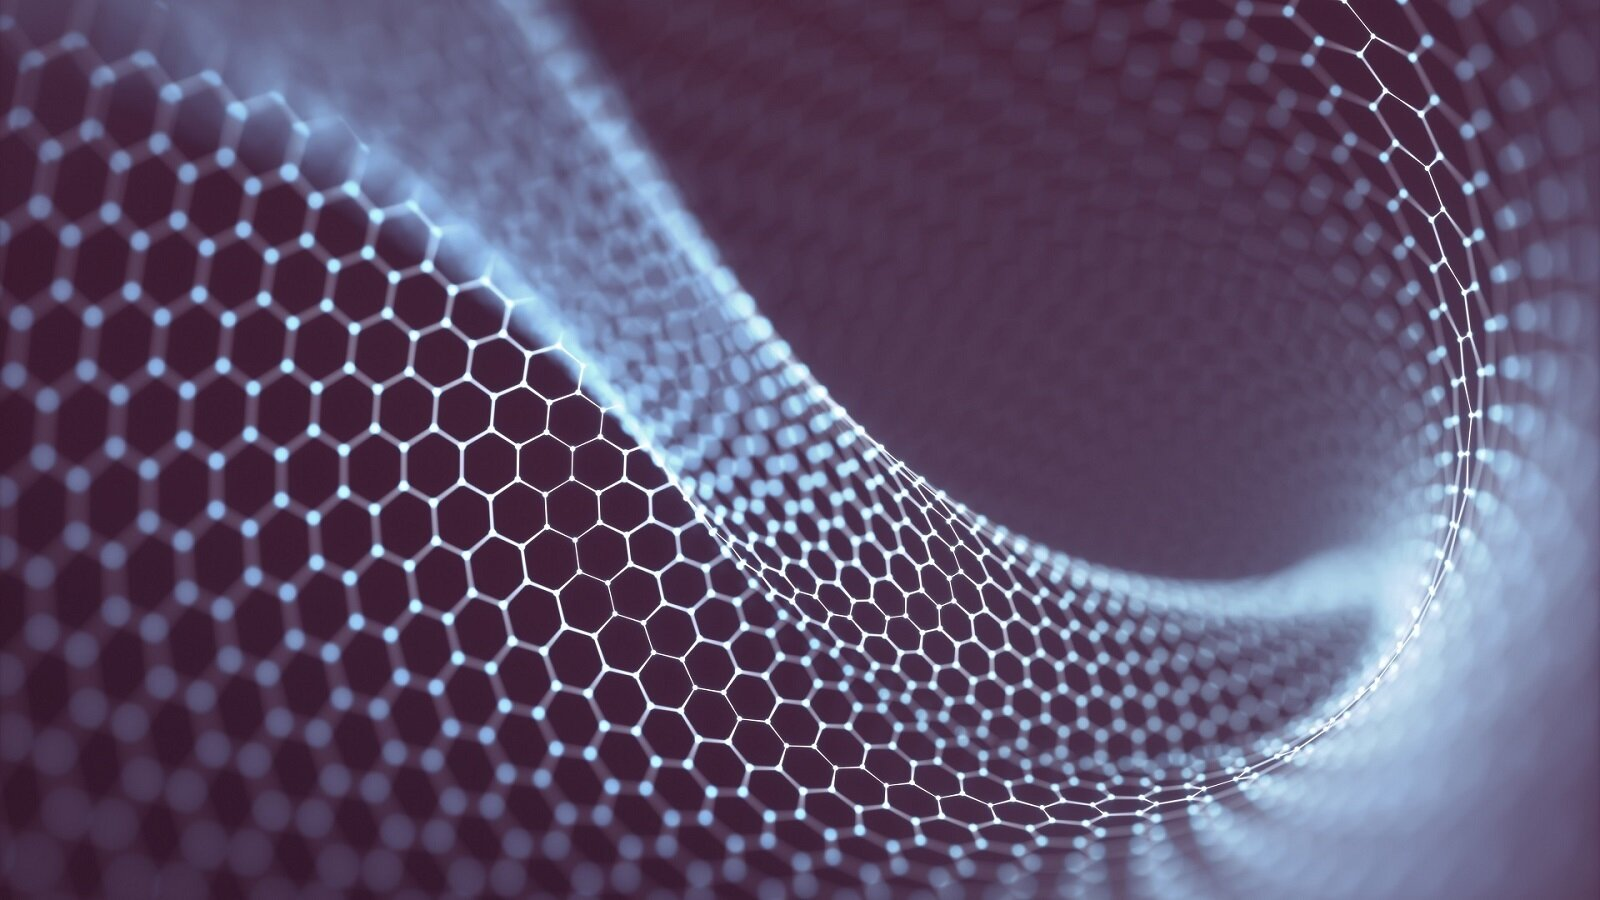 Can artificial intelligence open new doors for materials discovery?